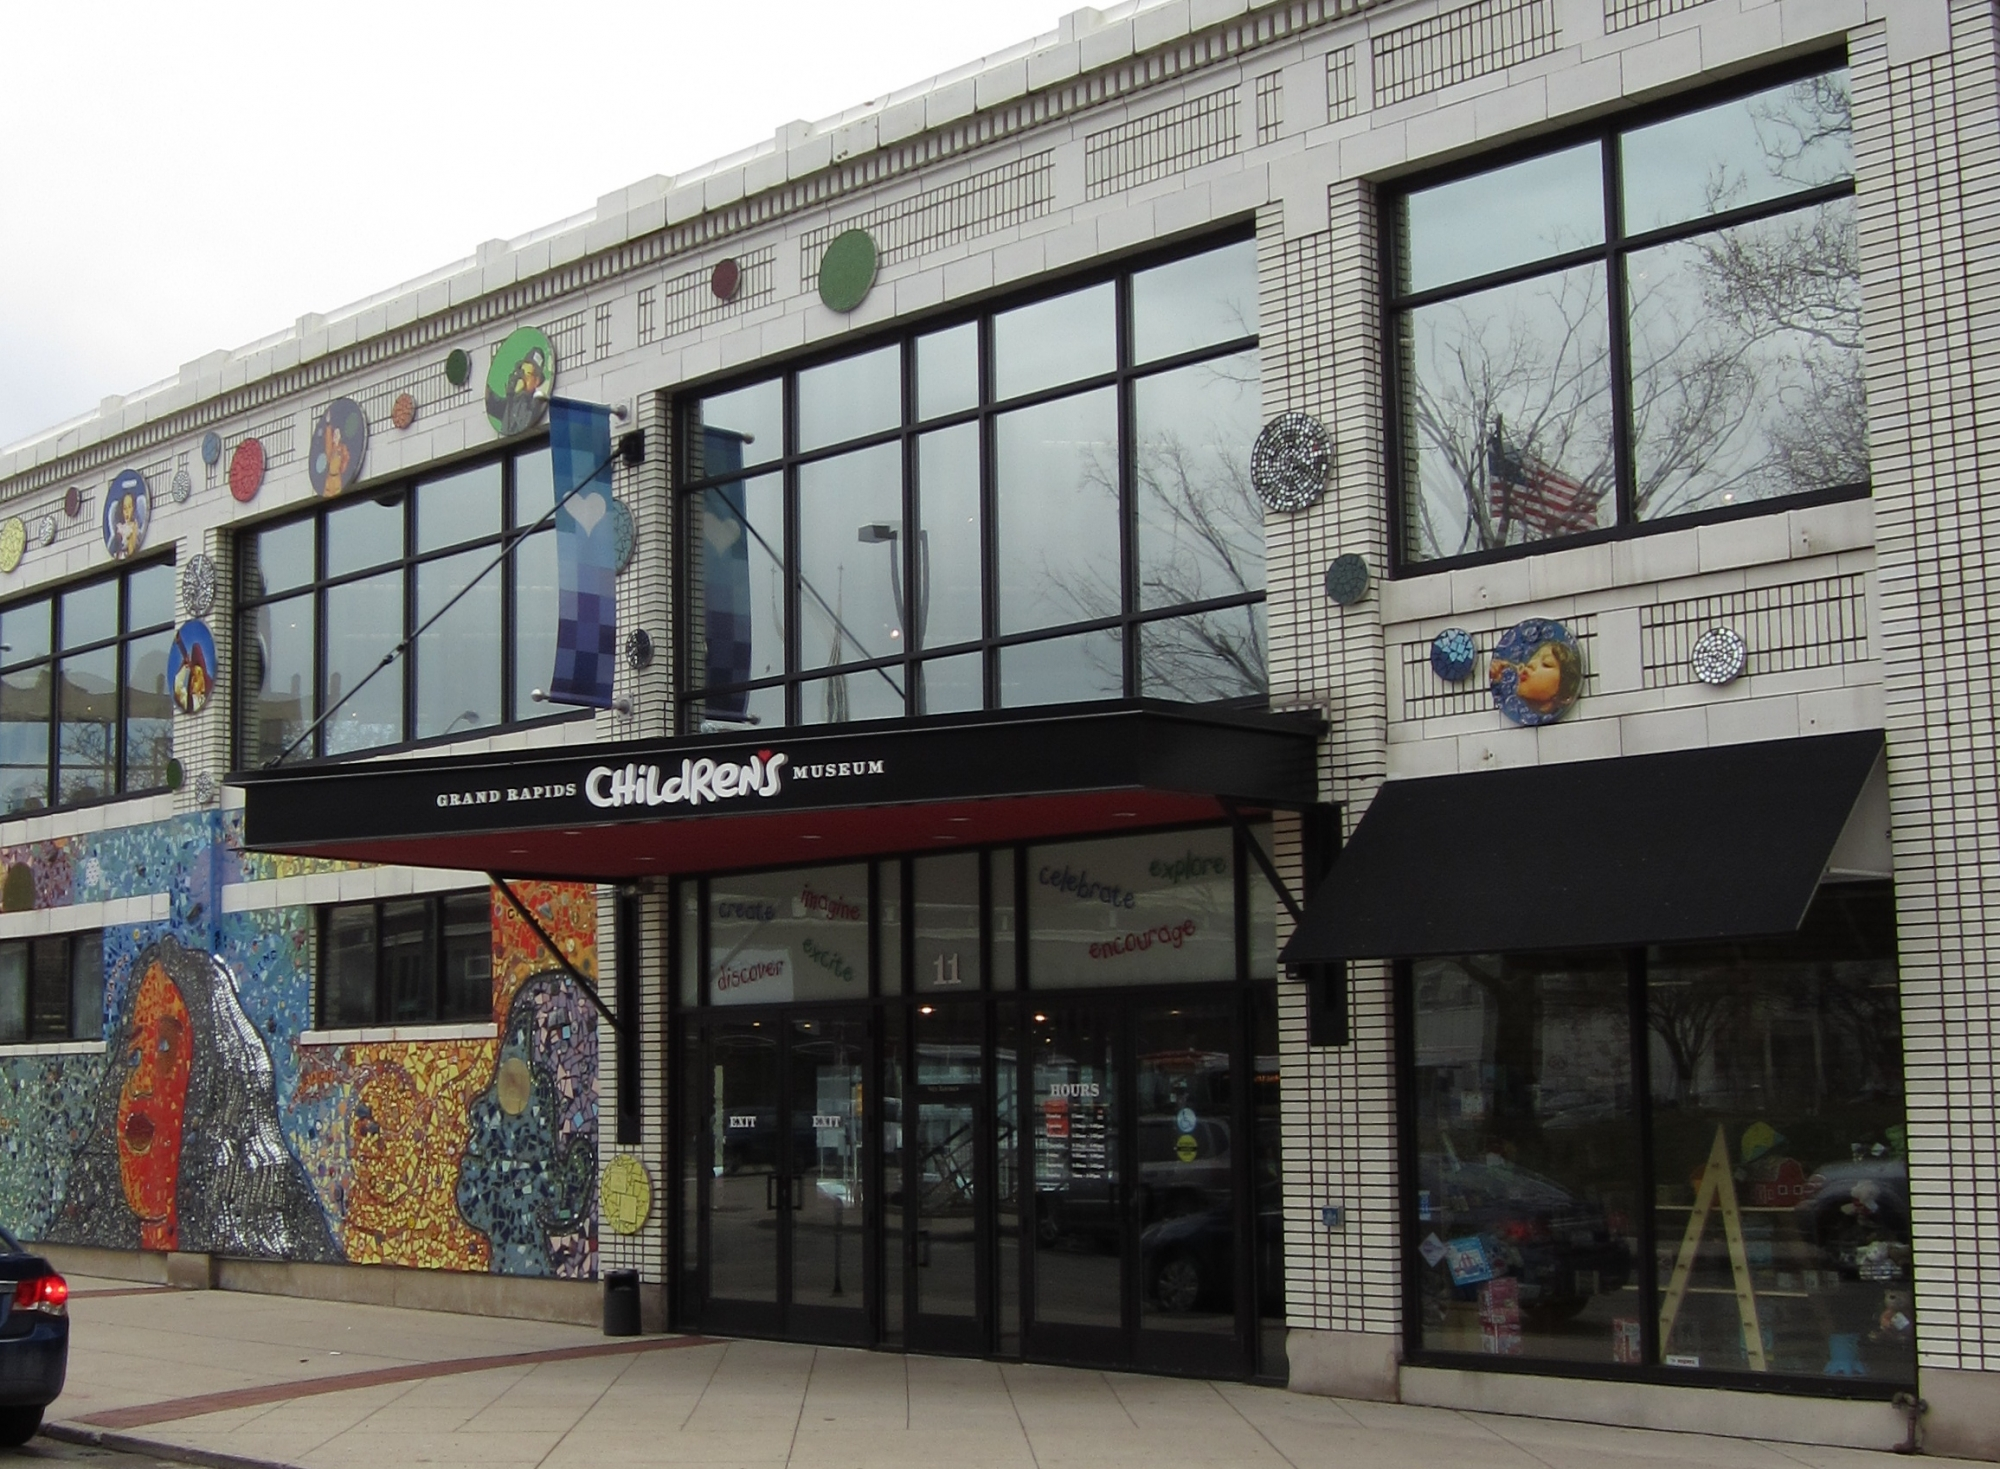 A photo of Grand Rapids Children's Museum